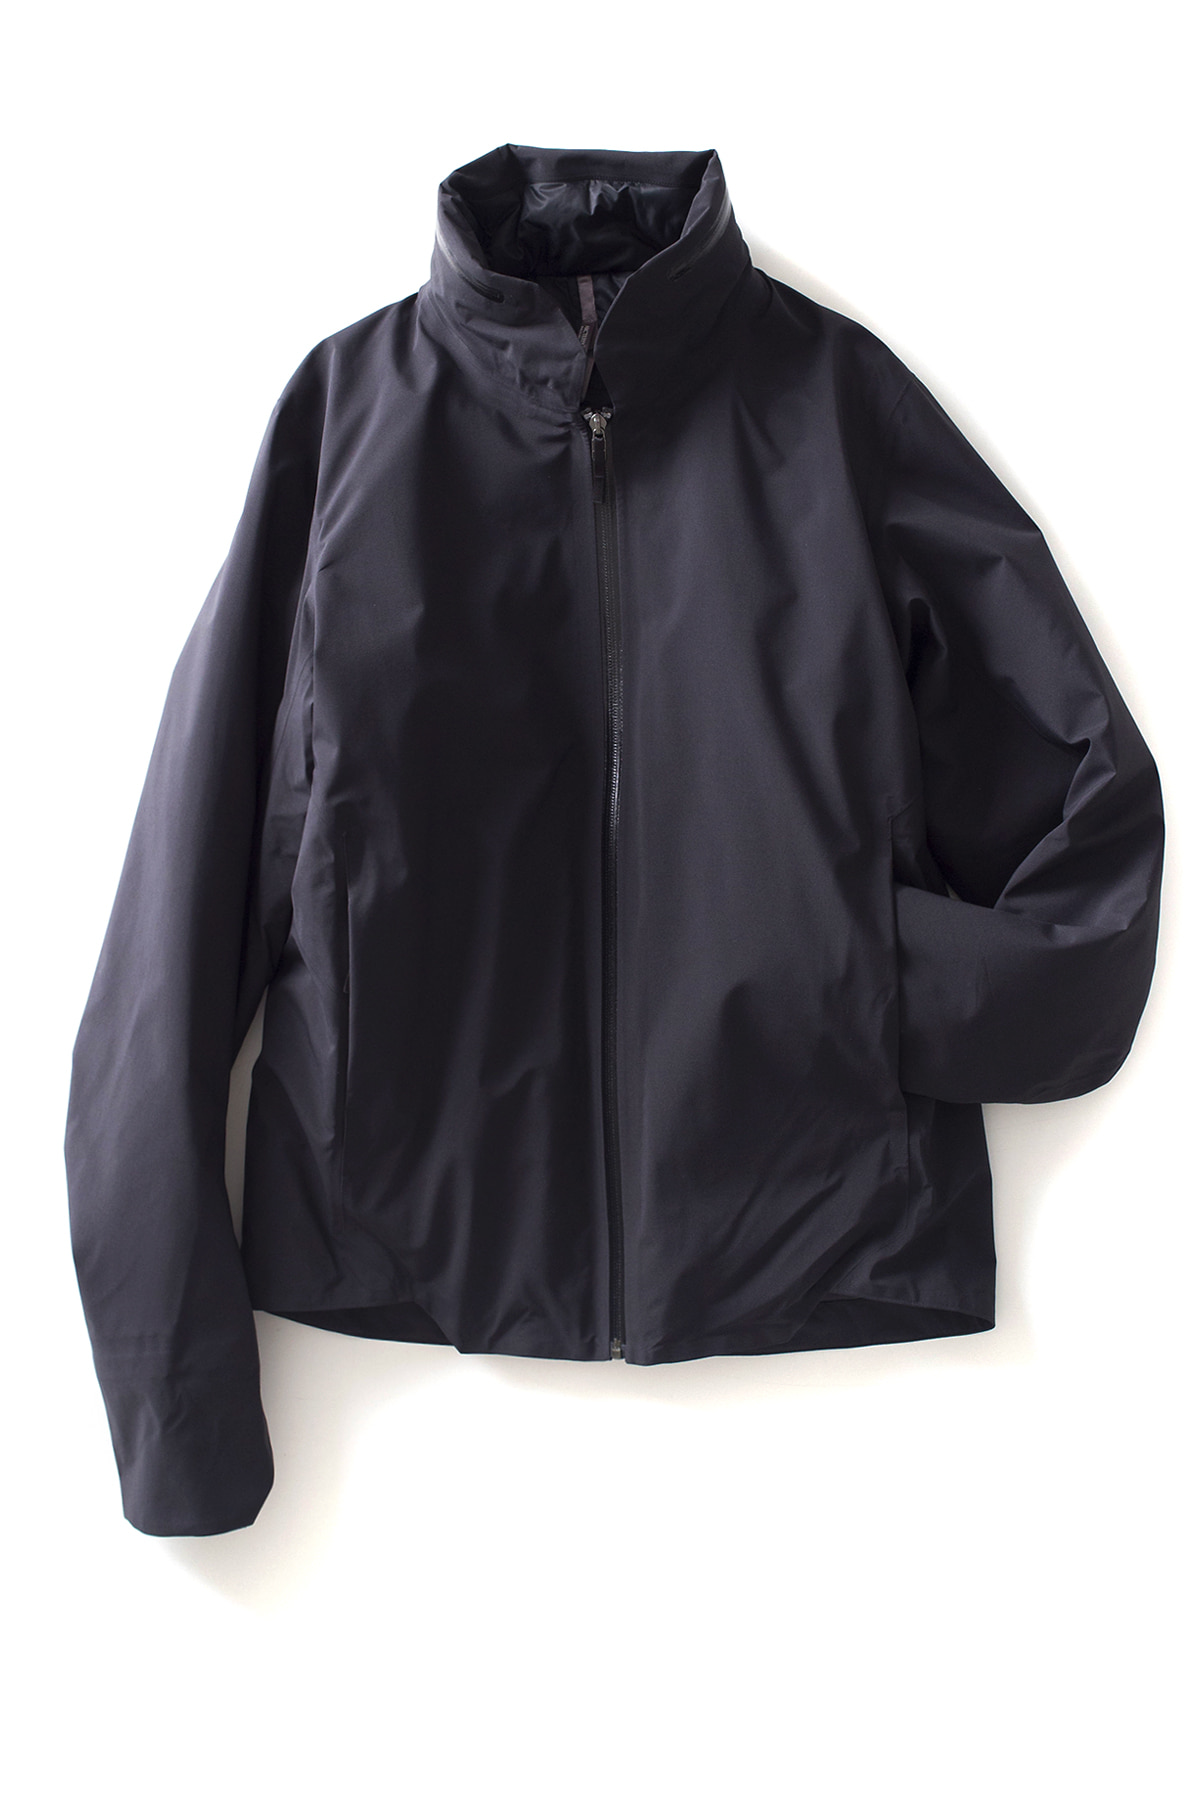 ARC'TERYX VEILANCE : ACHROM IS JACKET (Black)